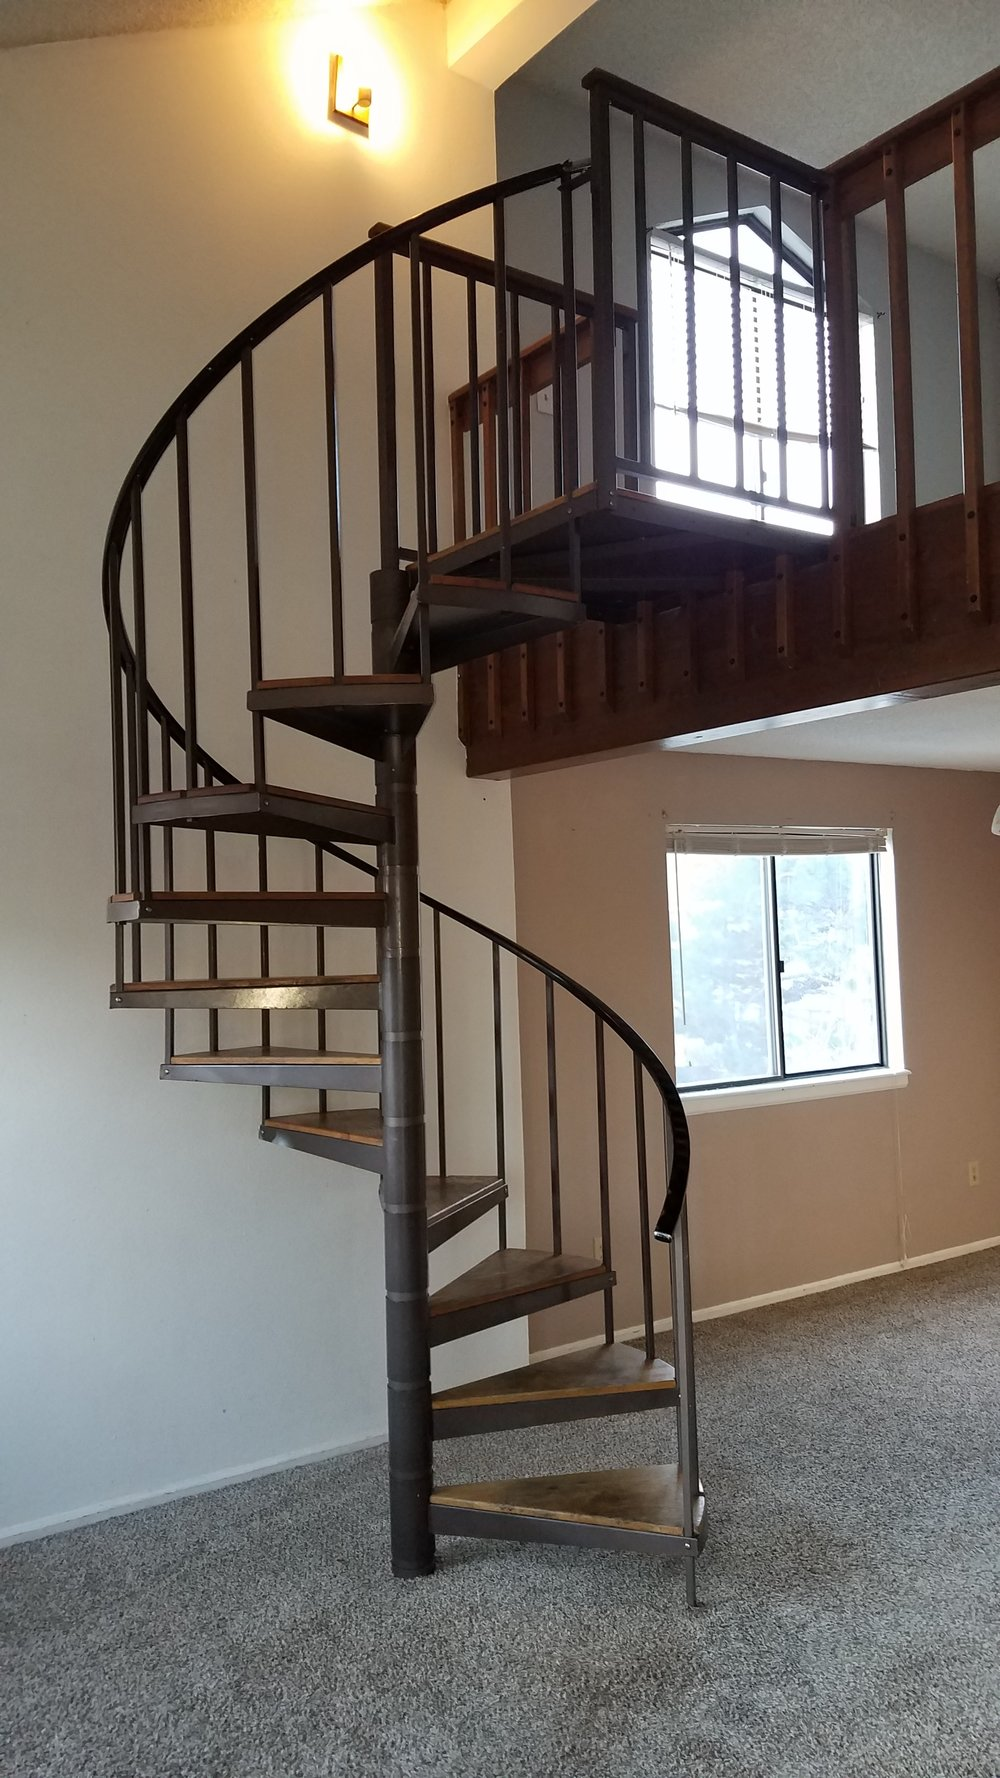 "Spiral staircases, open risers and balusters spaced more than 4"" apart are all potential safety hazard for small kiddos and pets. Also moving furniture up and down has got to be a nightmare."